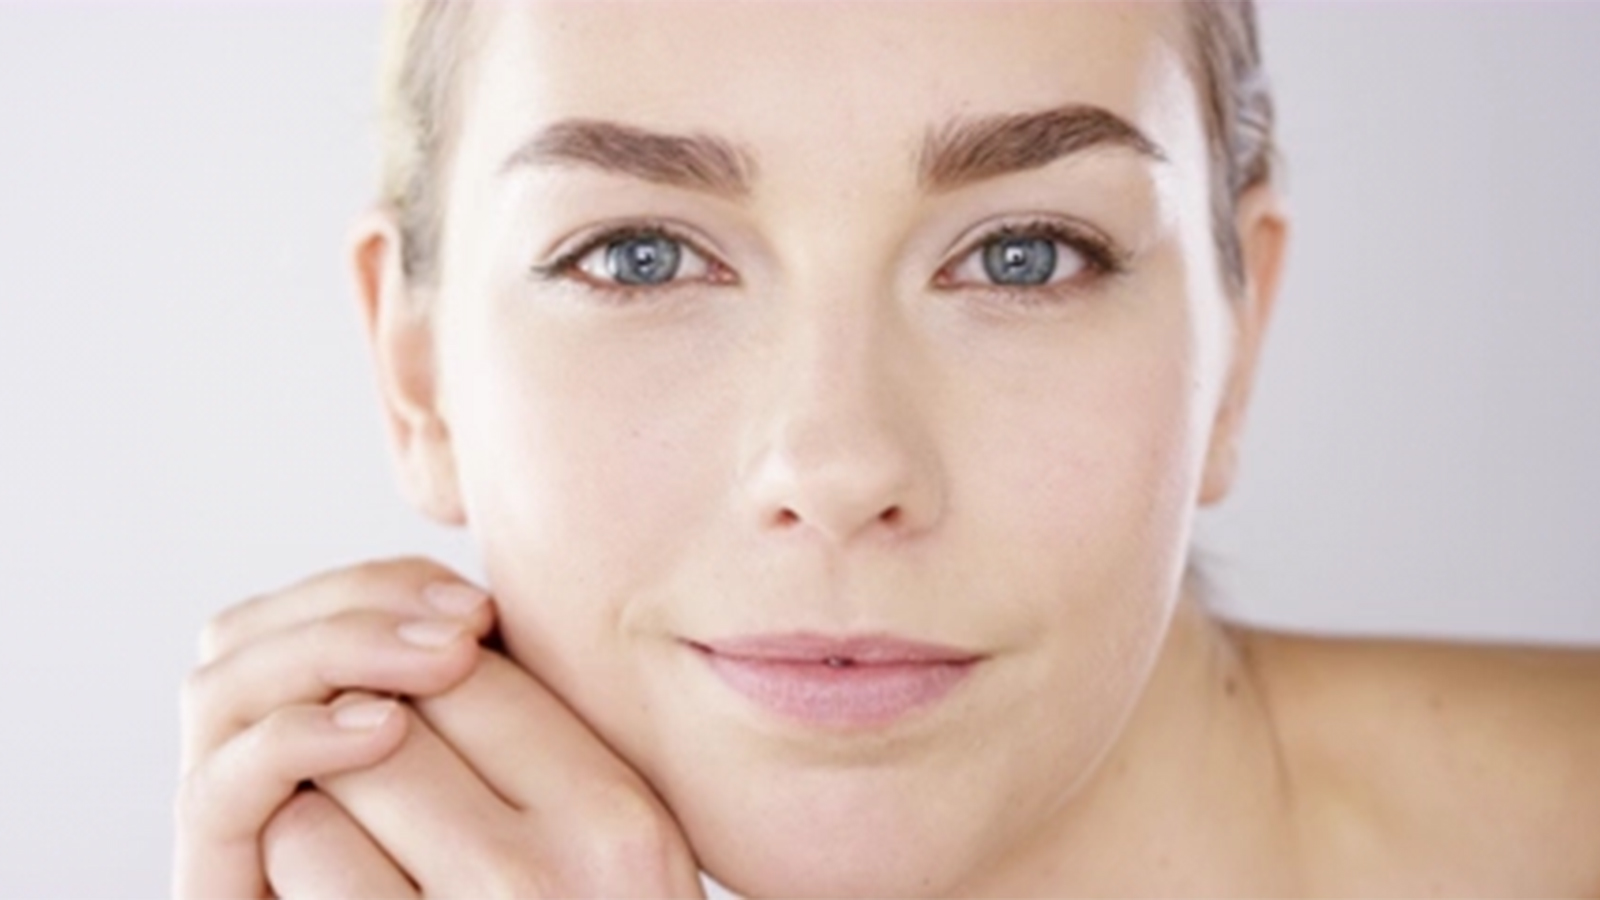 Aesthetica Center - Center for Facial Cosmetic and Laser